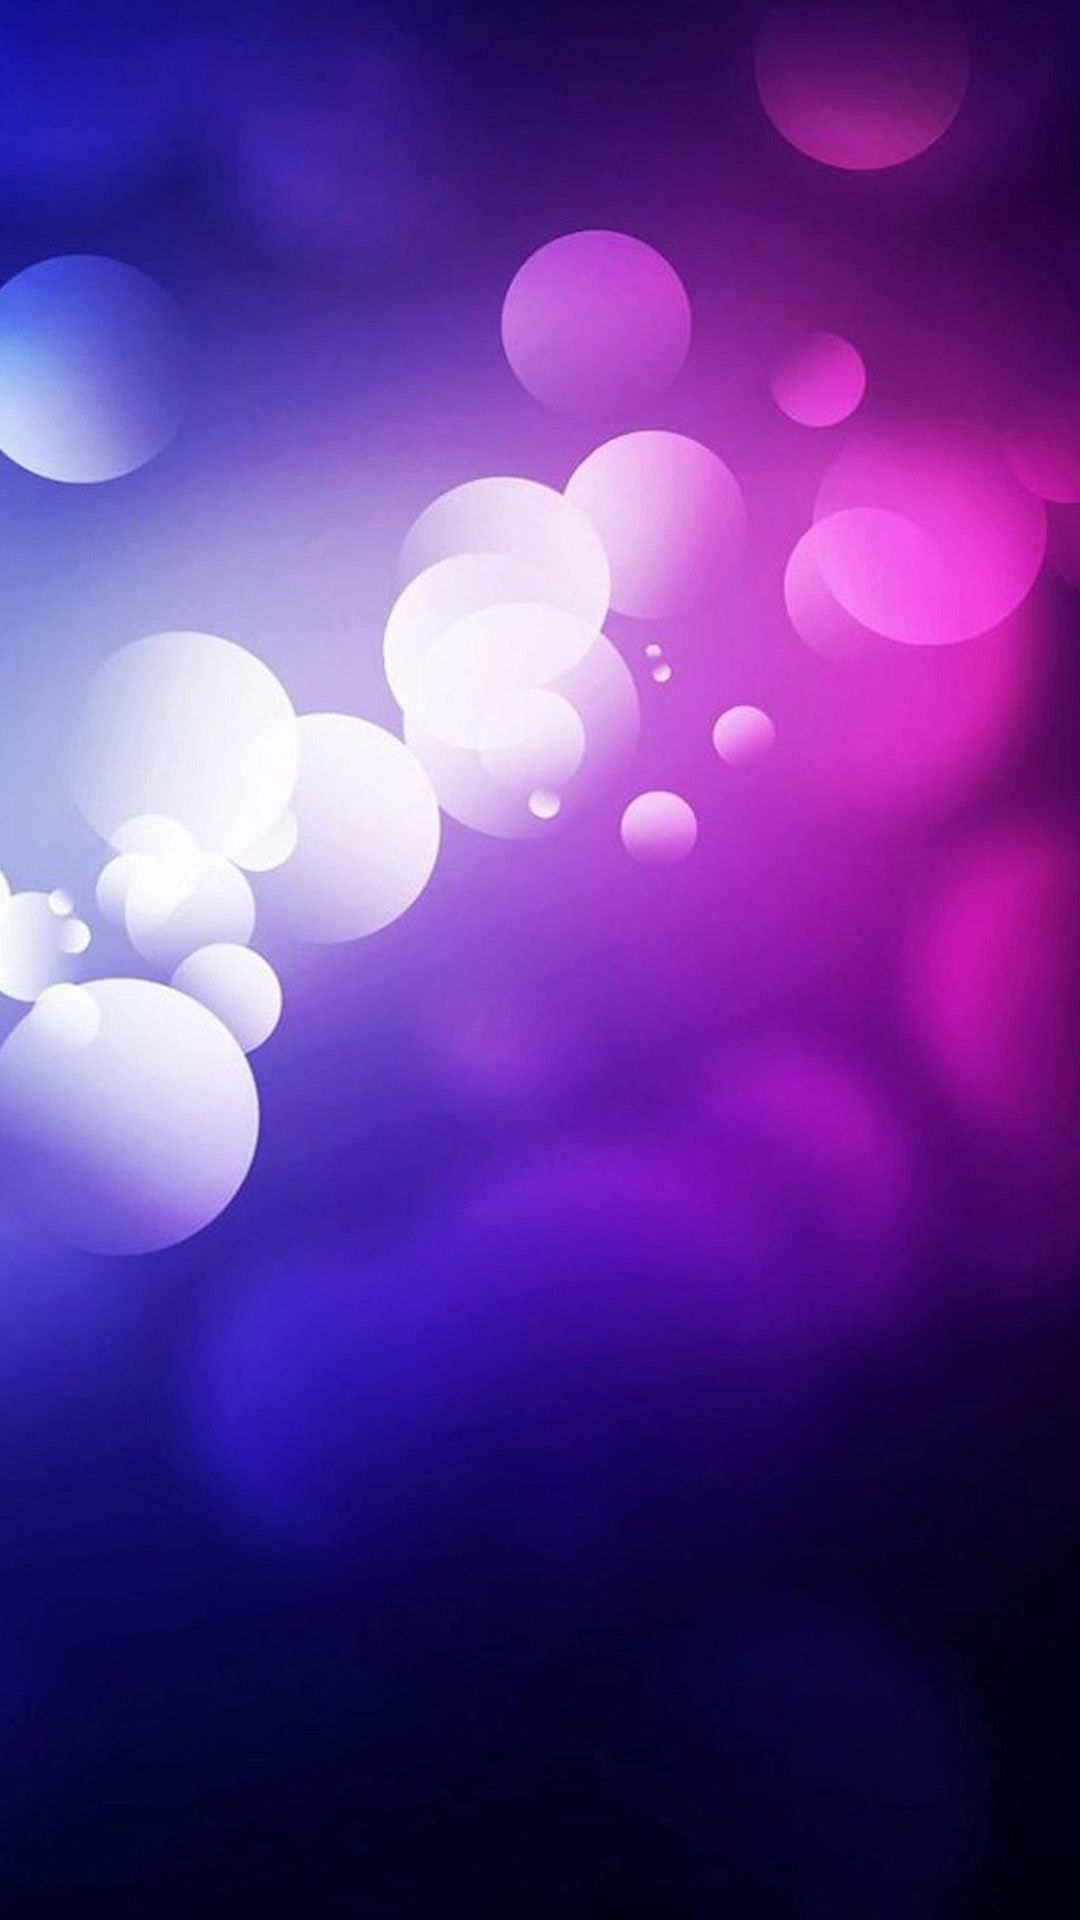 Wallpaper iphone soft - Beautiful Glowing Purple Soft Circle Hd Iphone 6 Wallpaper Http Helpyourselfimages